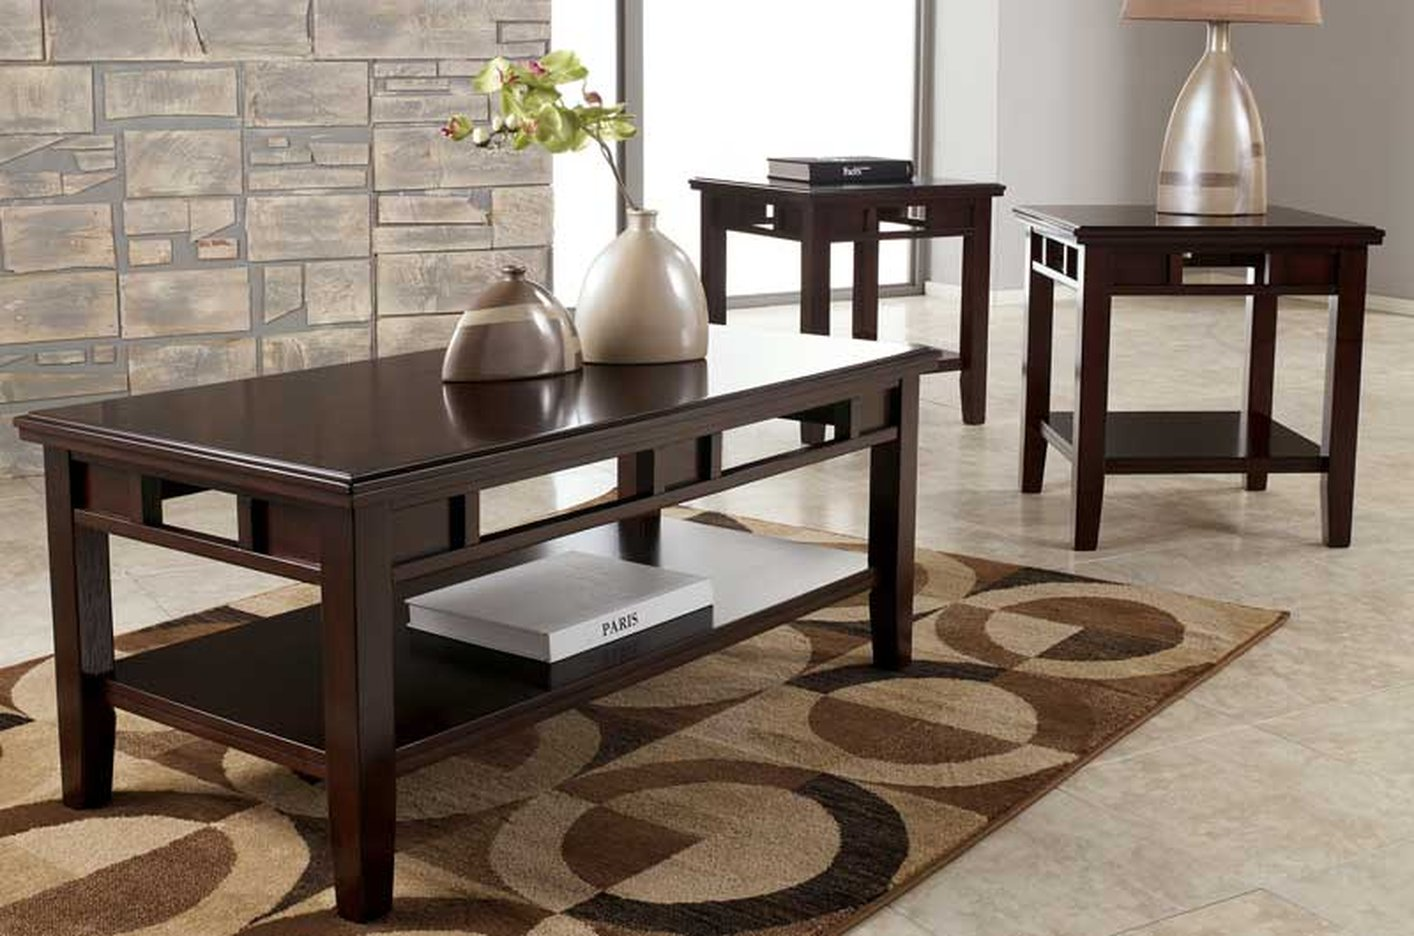 coffee tables ideas modern table and end set logan description ashley furniture features statusque elegance books decorative items elegant white french bedroom what color goes